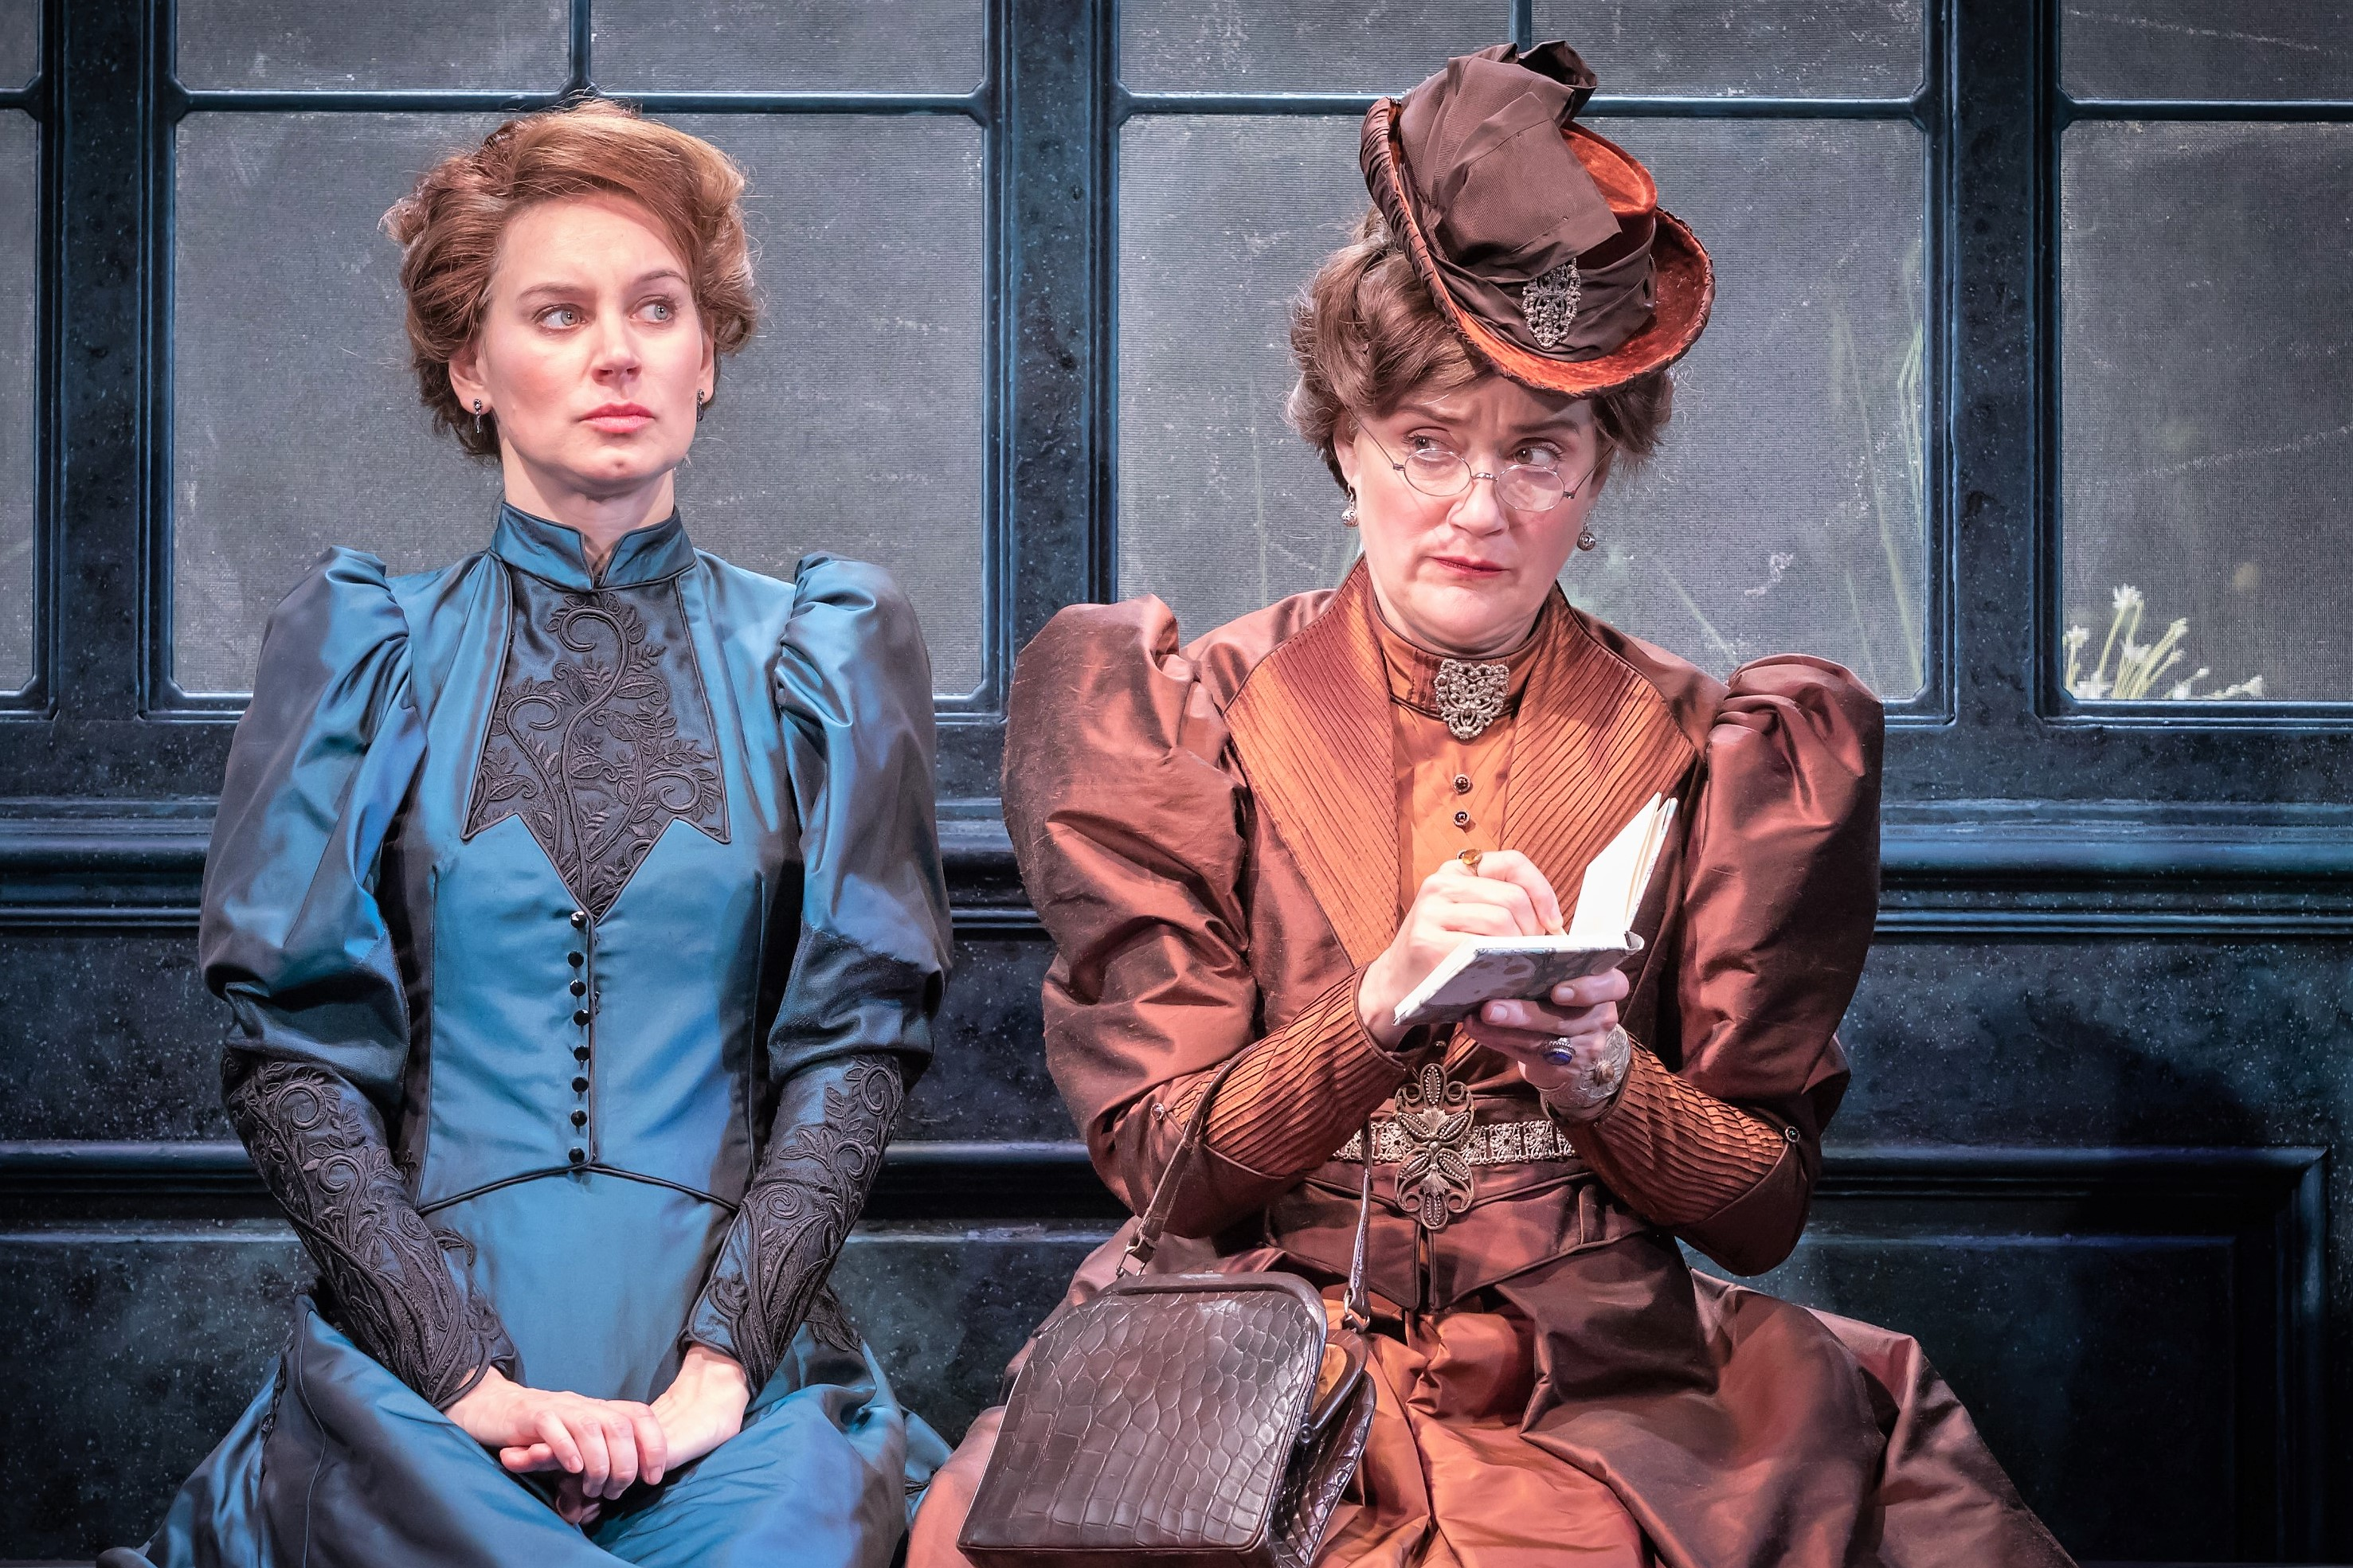 Pippa Nixon as Gwendolyn Fairfax and Sophie Thompson as Lady Bracknell © Marc Brenner